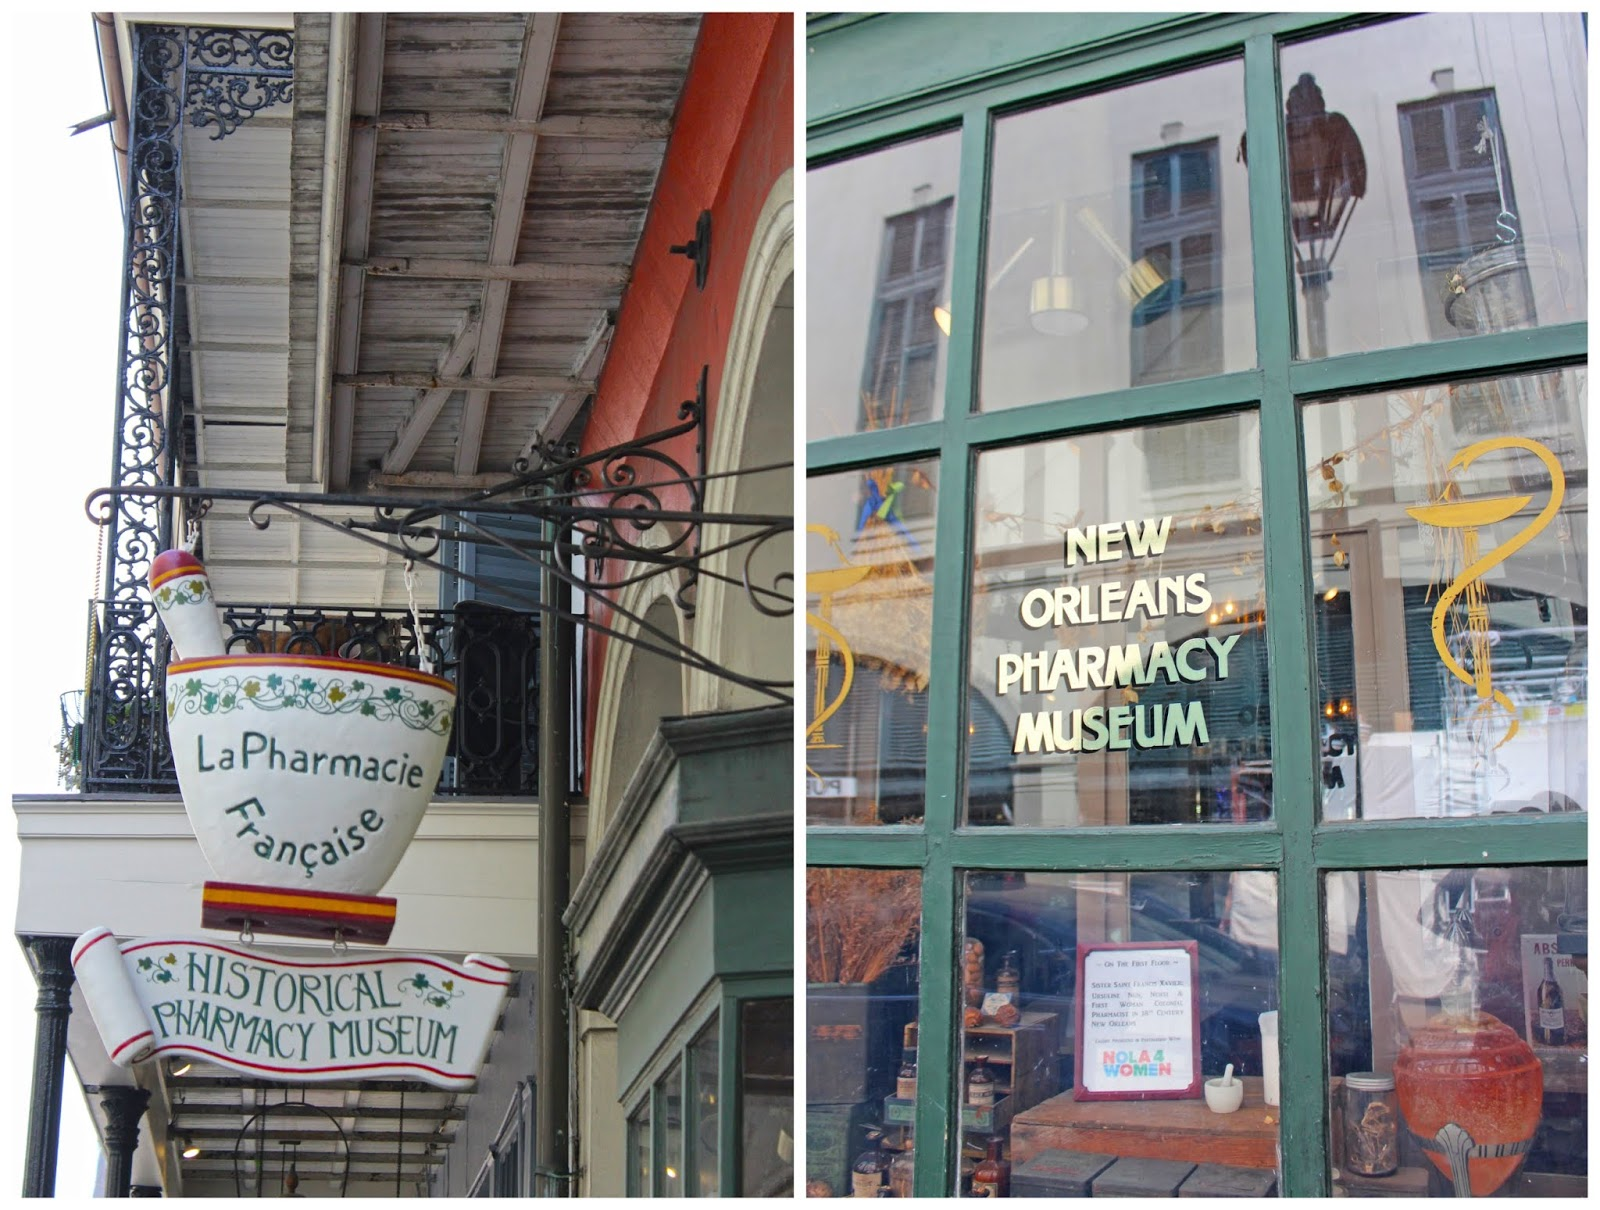 New Orleans pharmacy museum 3